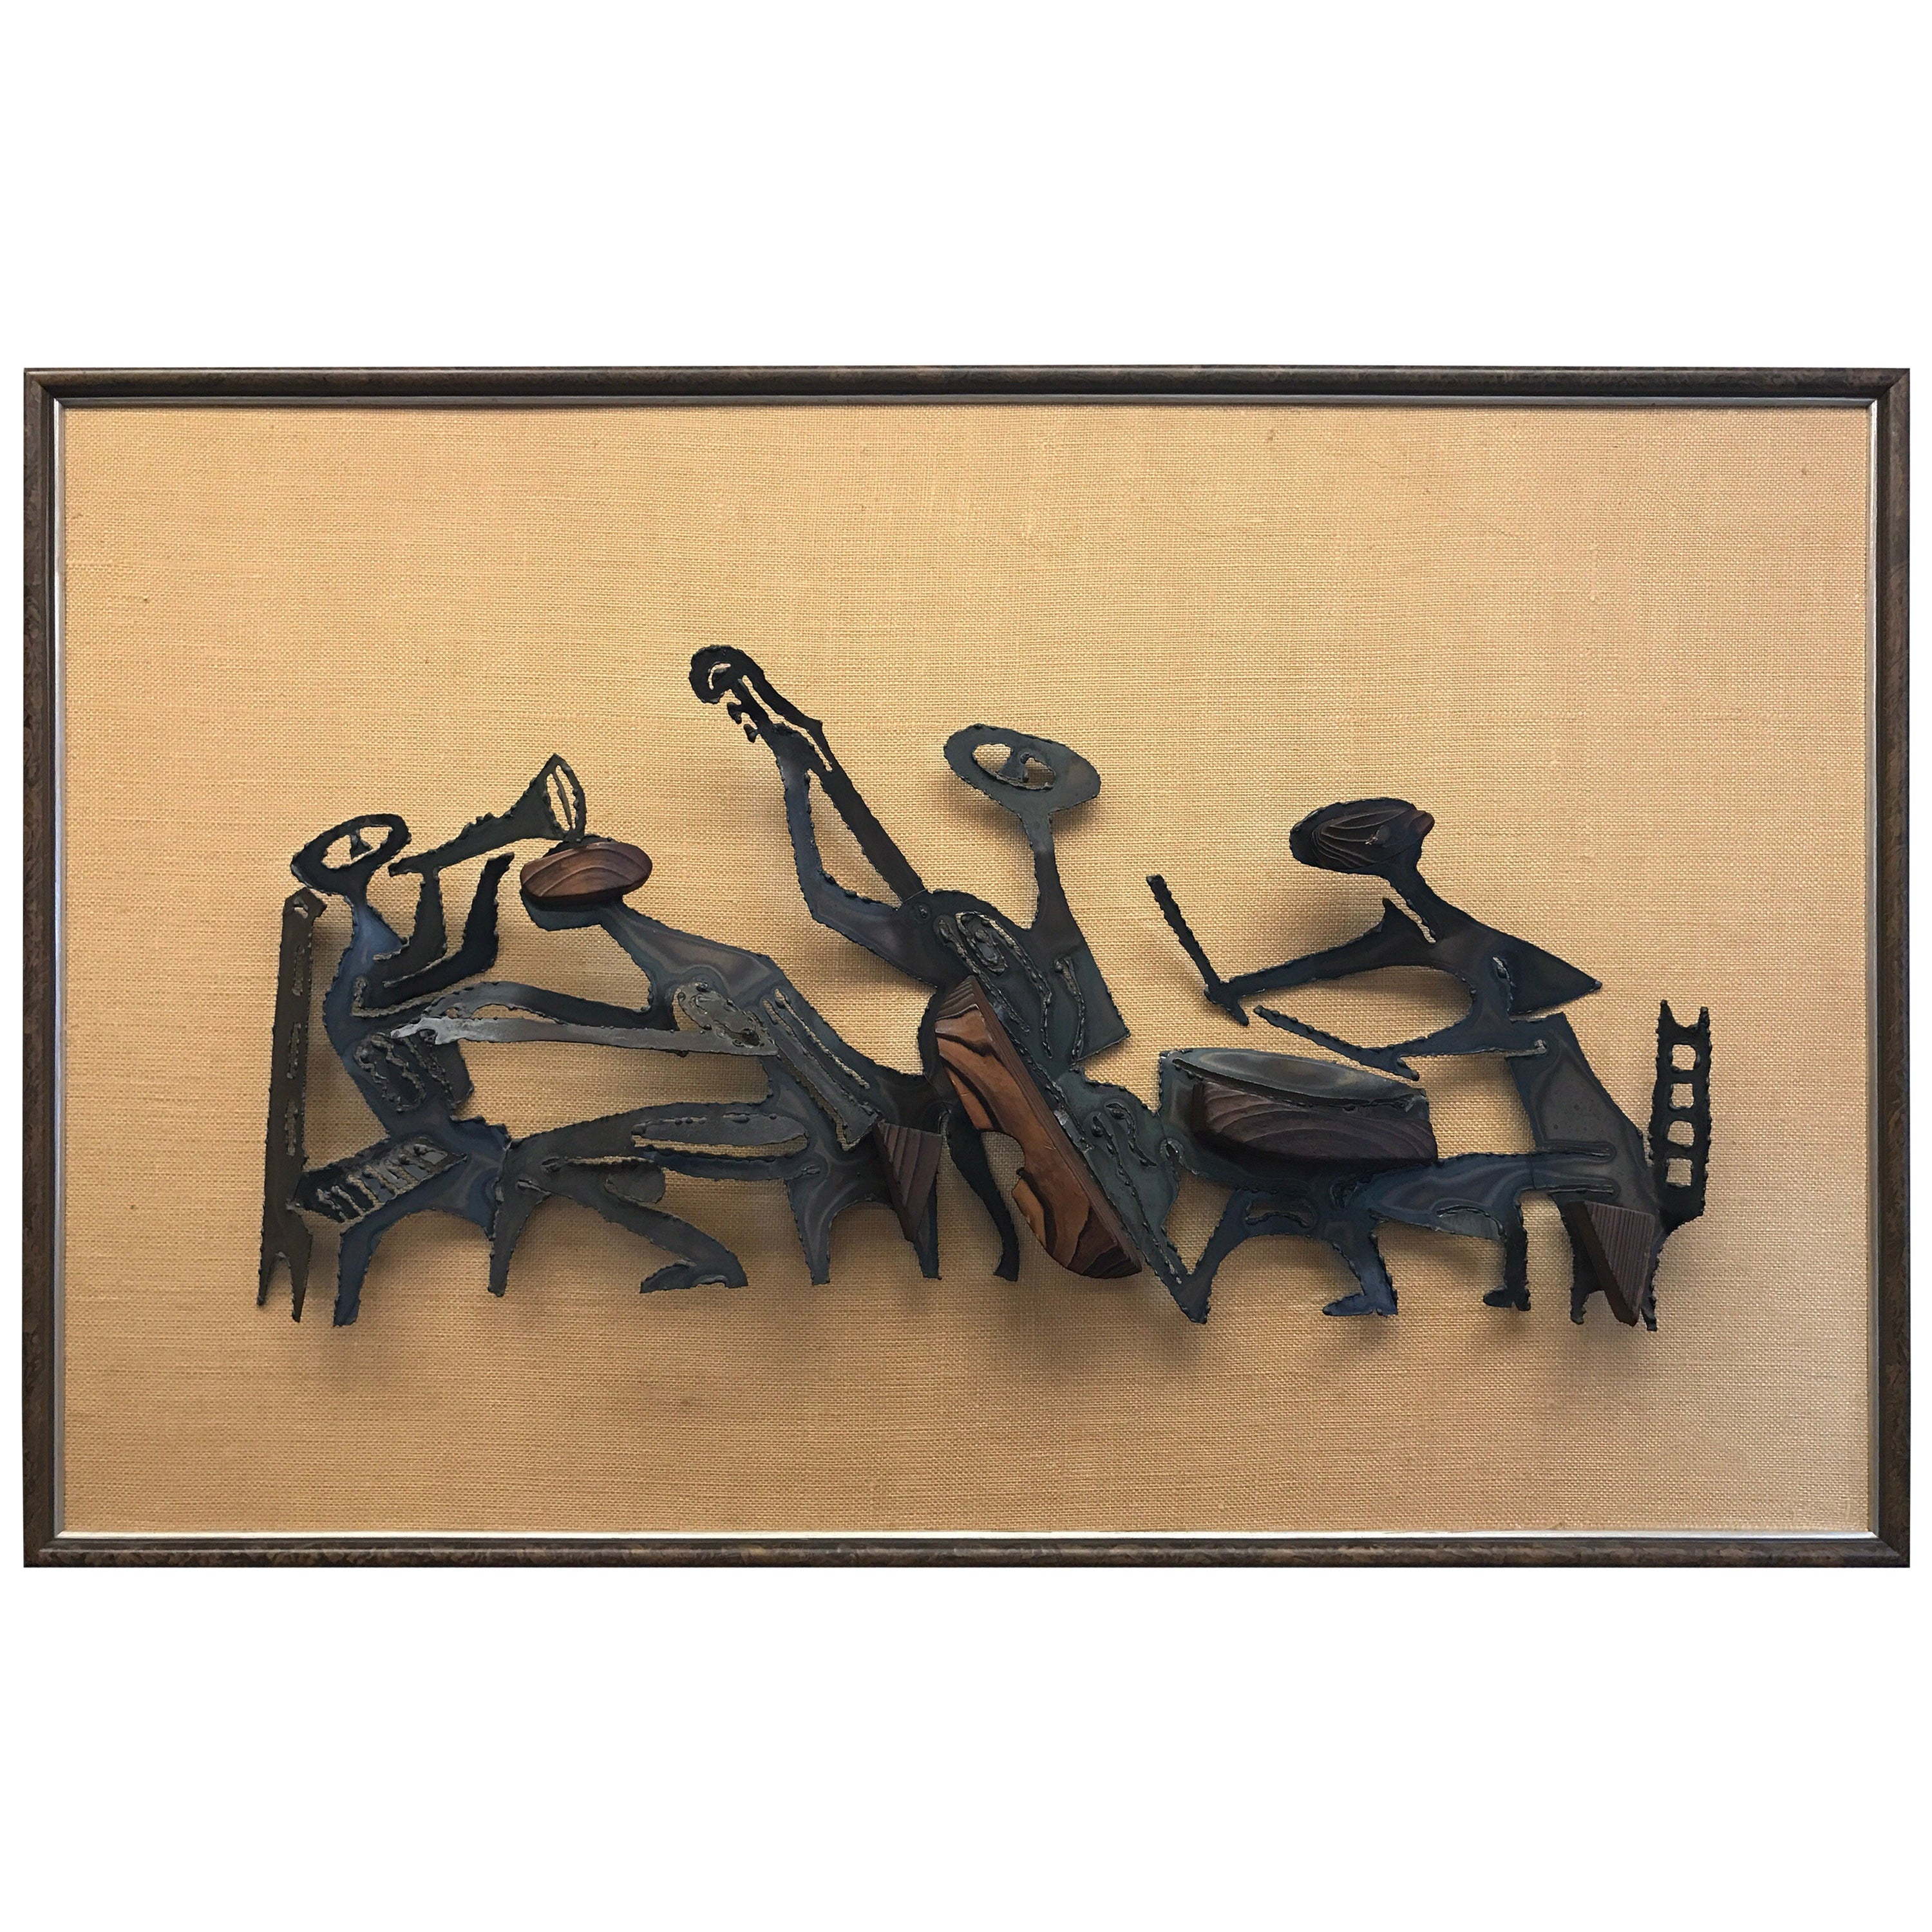 Marc Creates Metal Brutalist Wall Sculpture, 1970s For Sale at 1stdibs